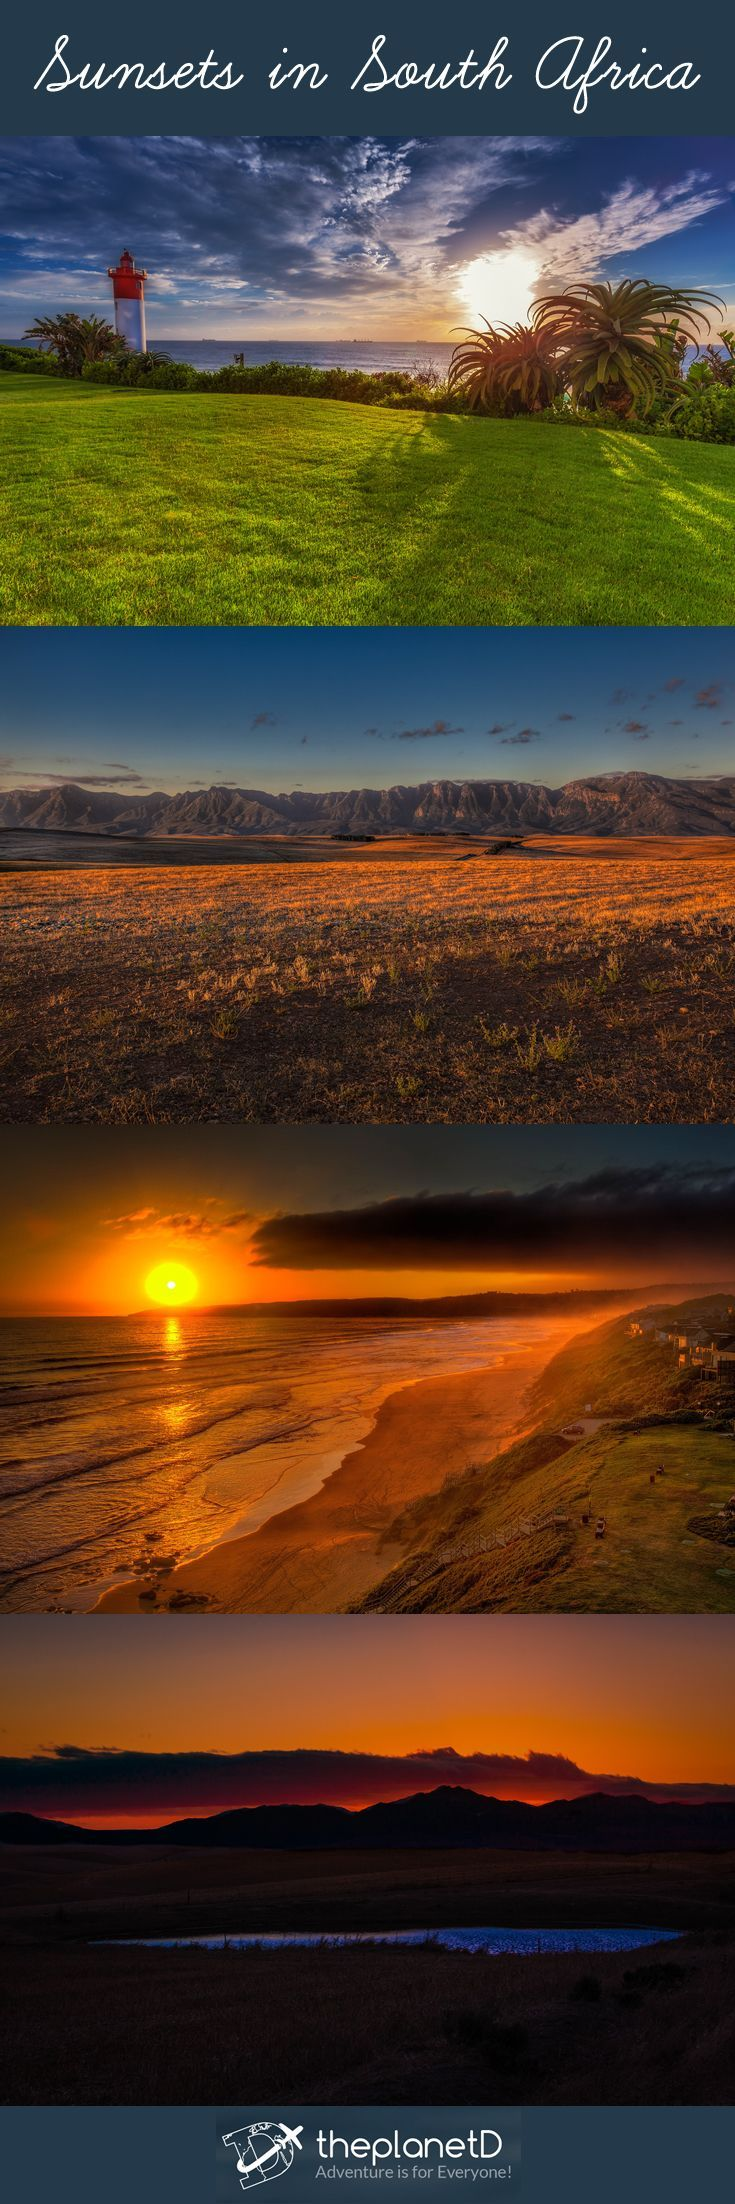 Sunsets in South Africa    South Africa is all about variety of activities, wildlife, adventures and scenery. These photos capture some of the highlights you can find travelling this part of Africa